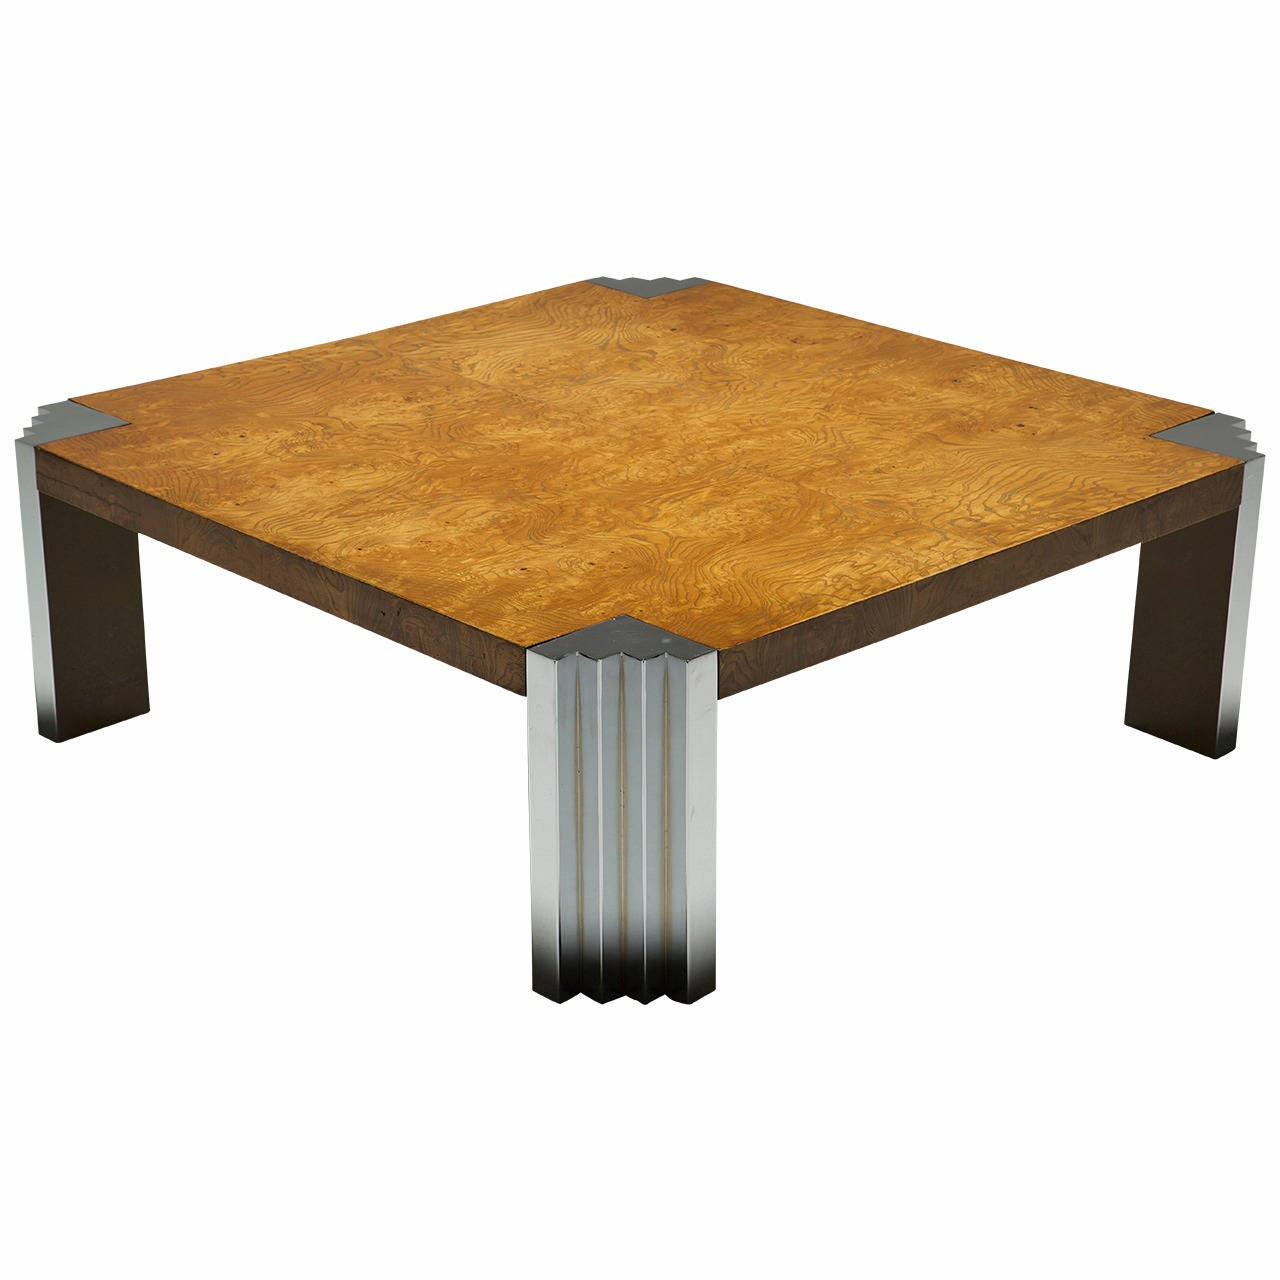 Burr walnut and chrome pace collection style skyscraper coffee table for sale at 1stdibs Collectors coffee table